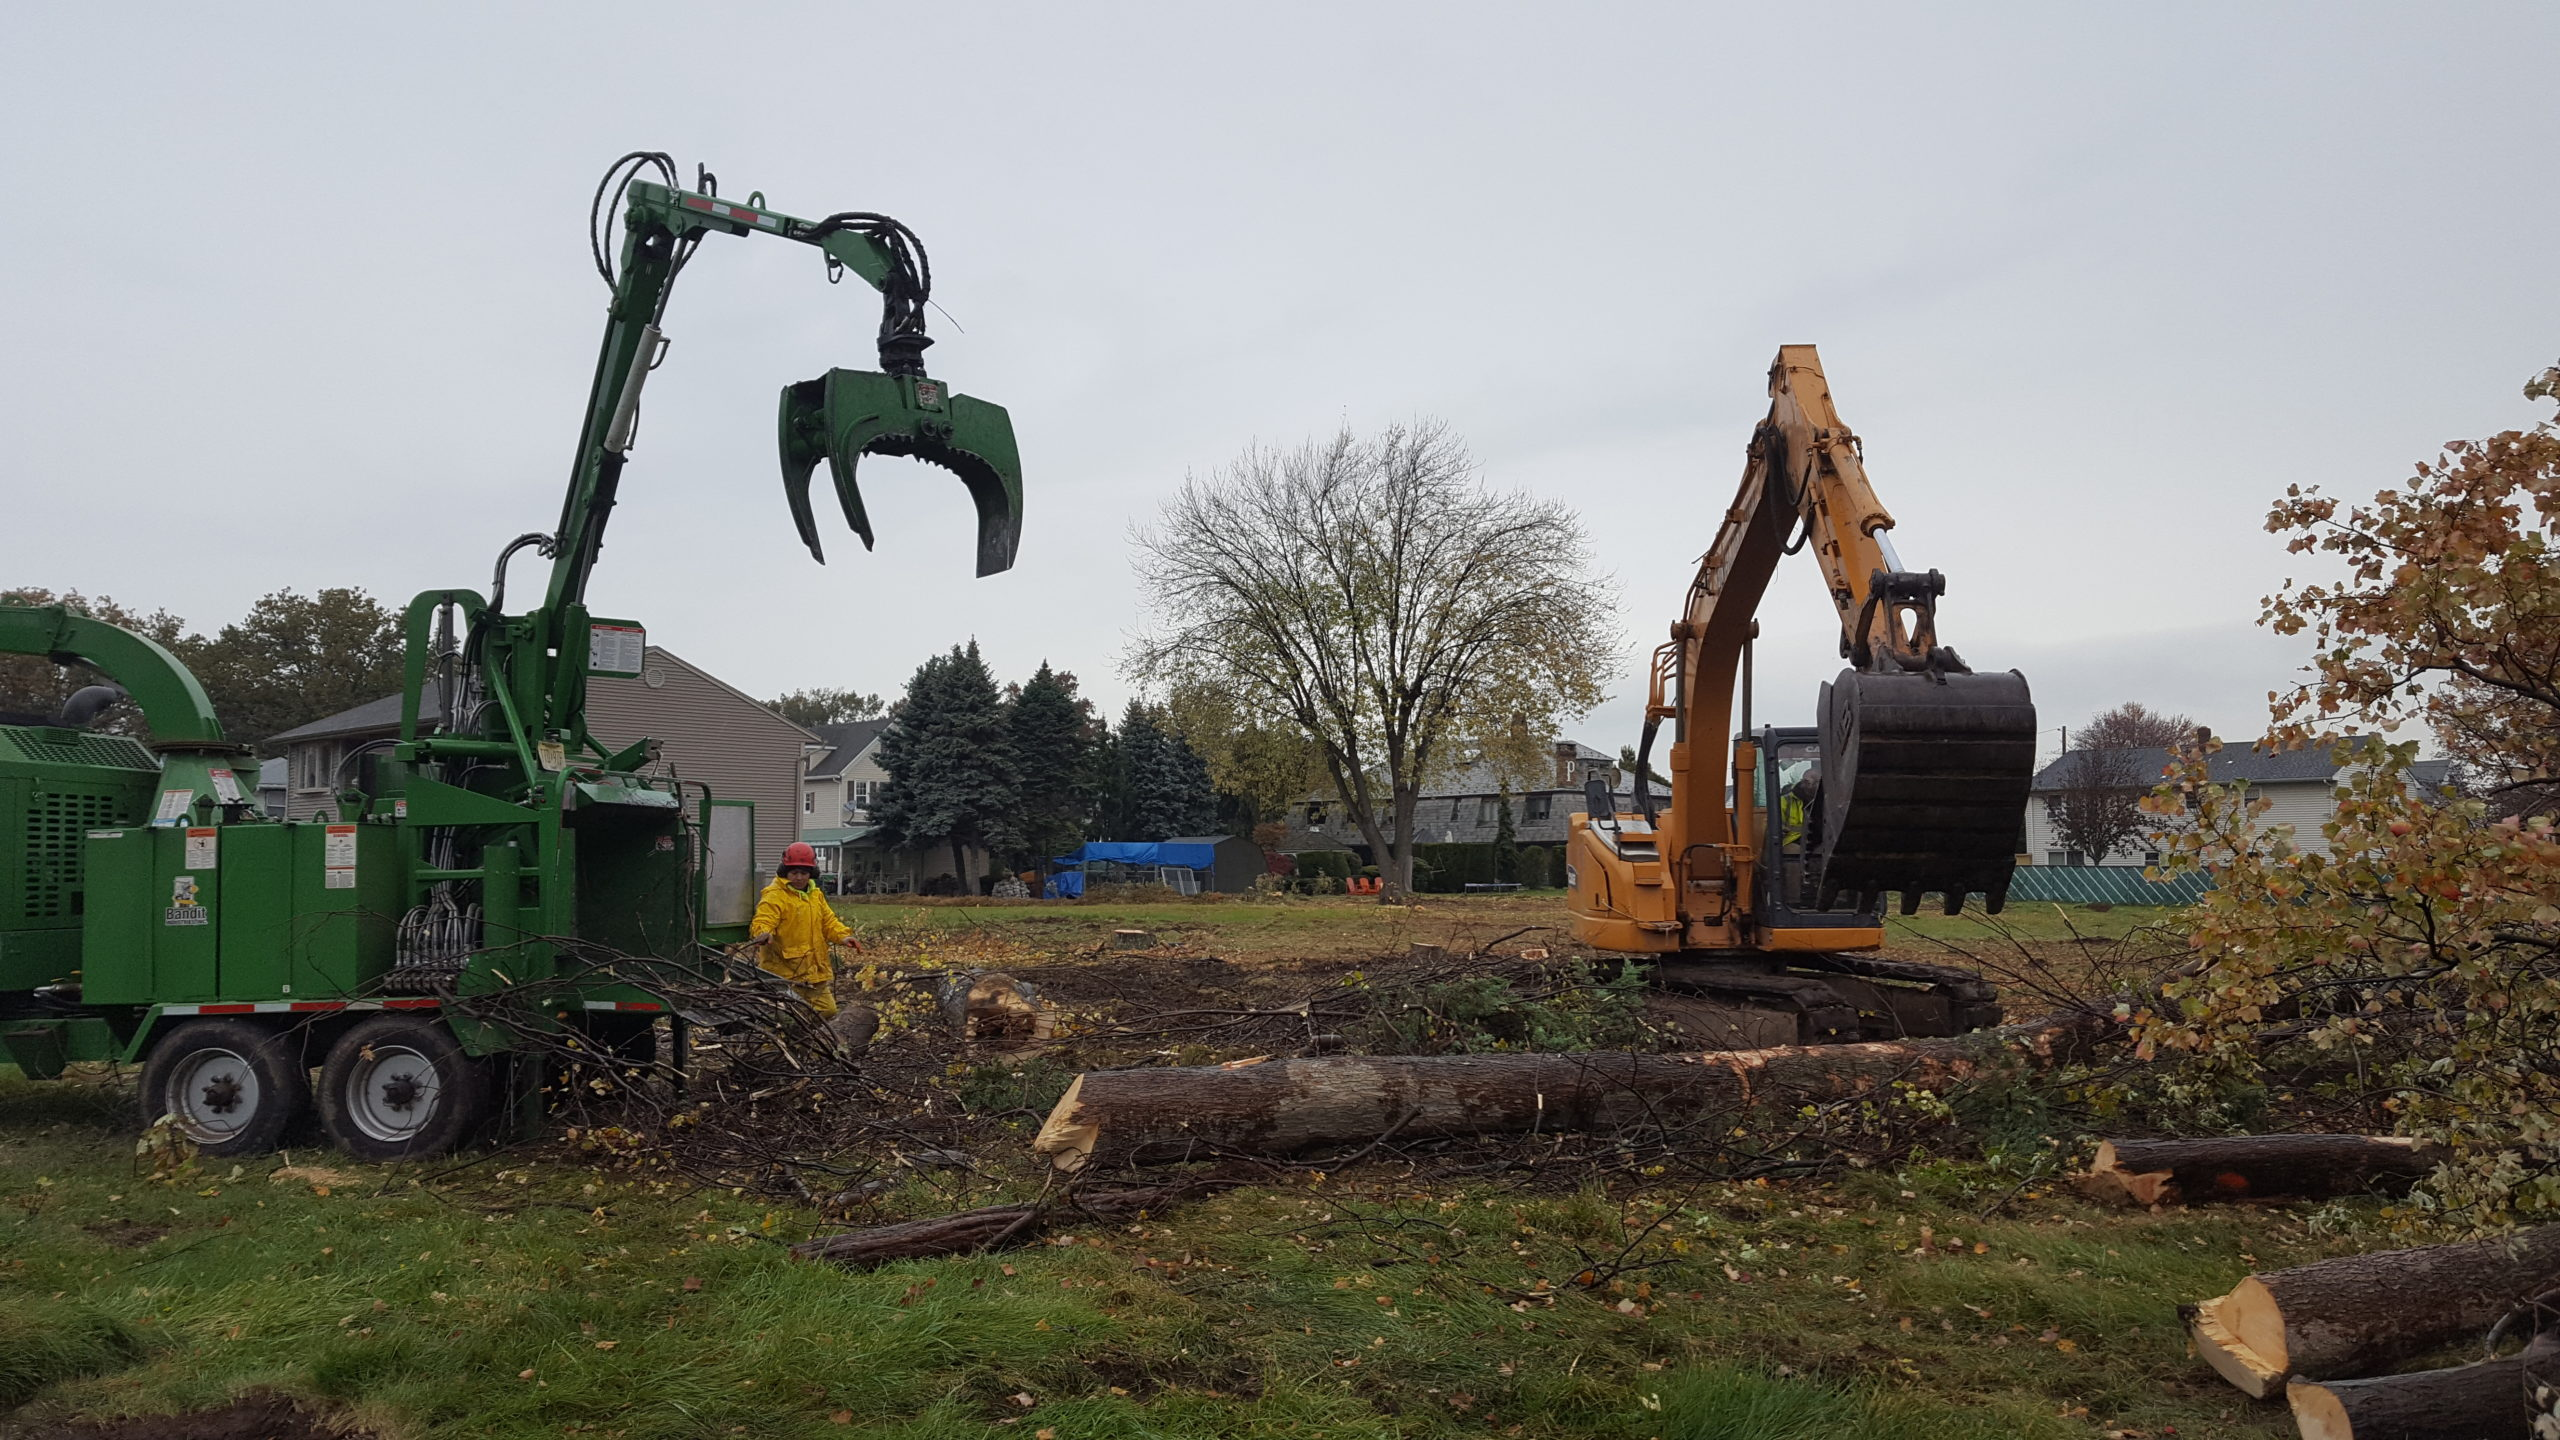 Cranes and Tree Trunks - NJ Land Clearing Services